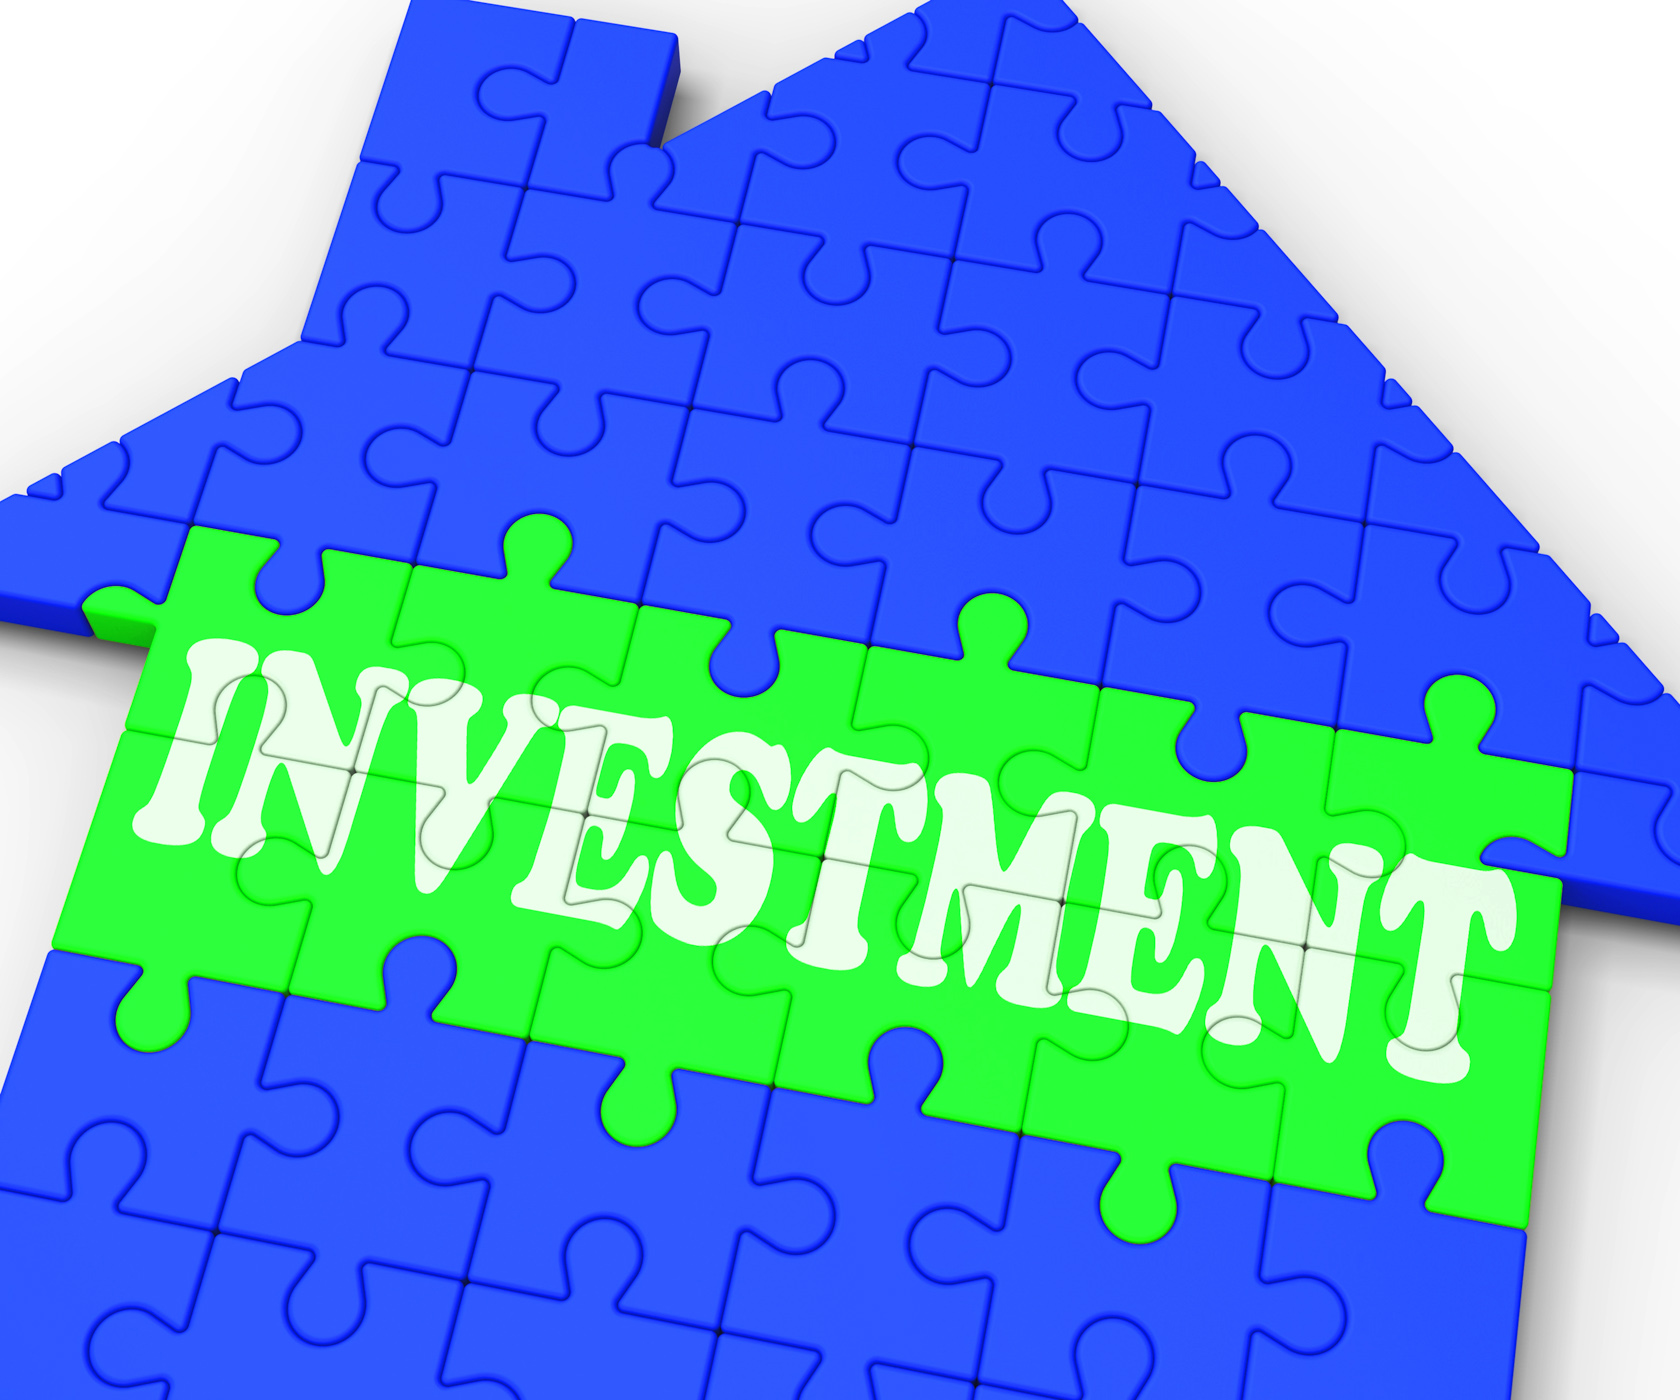 Investment House Means Investing In Real Estate, Buy, Loan, Rental, Realestate, HQ Photo